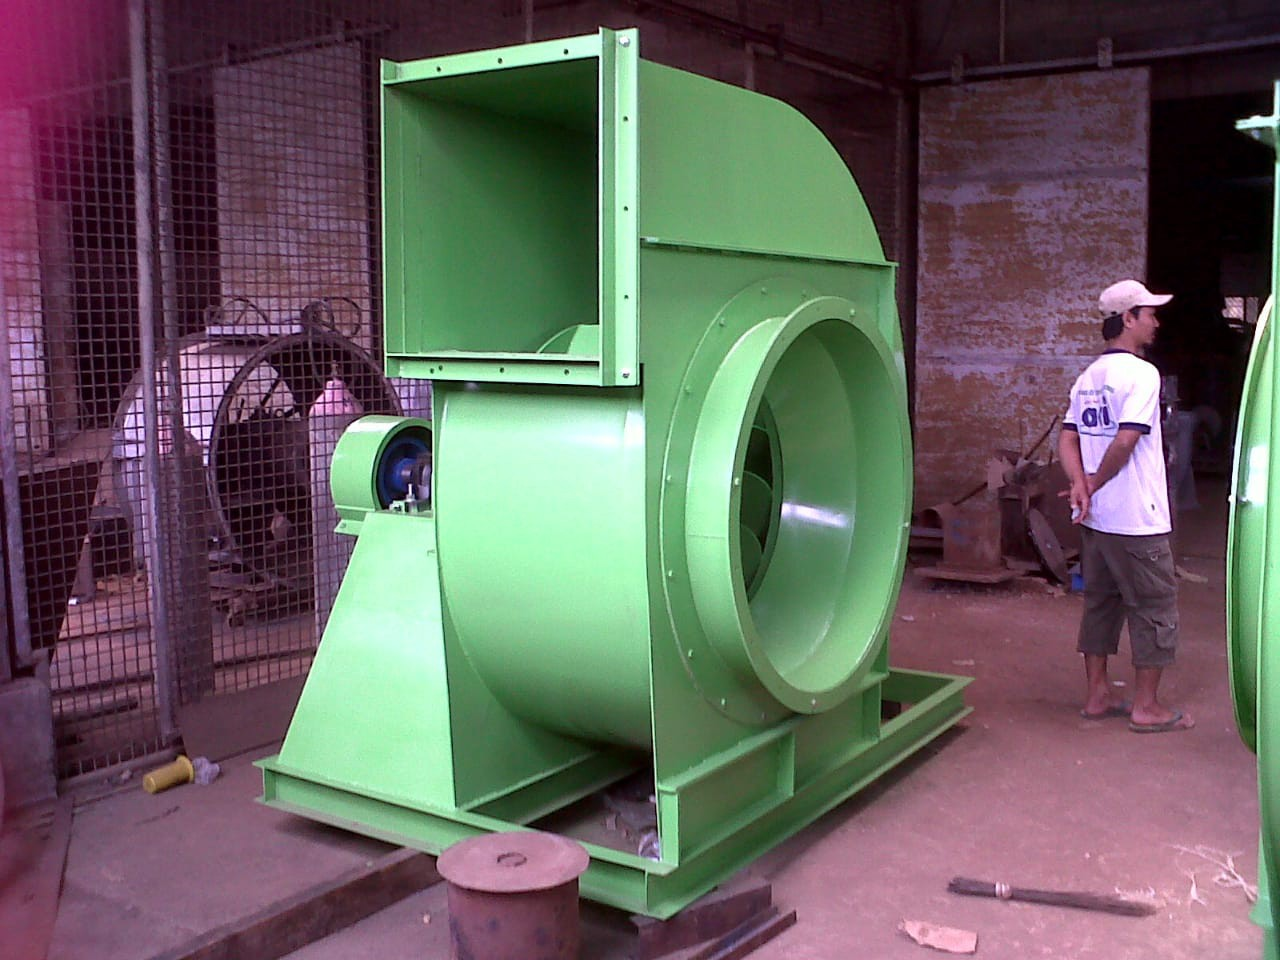 Jual Blower Keong Centrifugal Batam | by jual blower jakarta | Medium